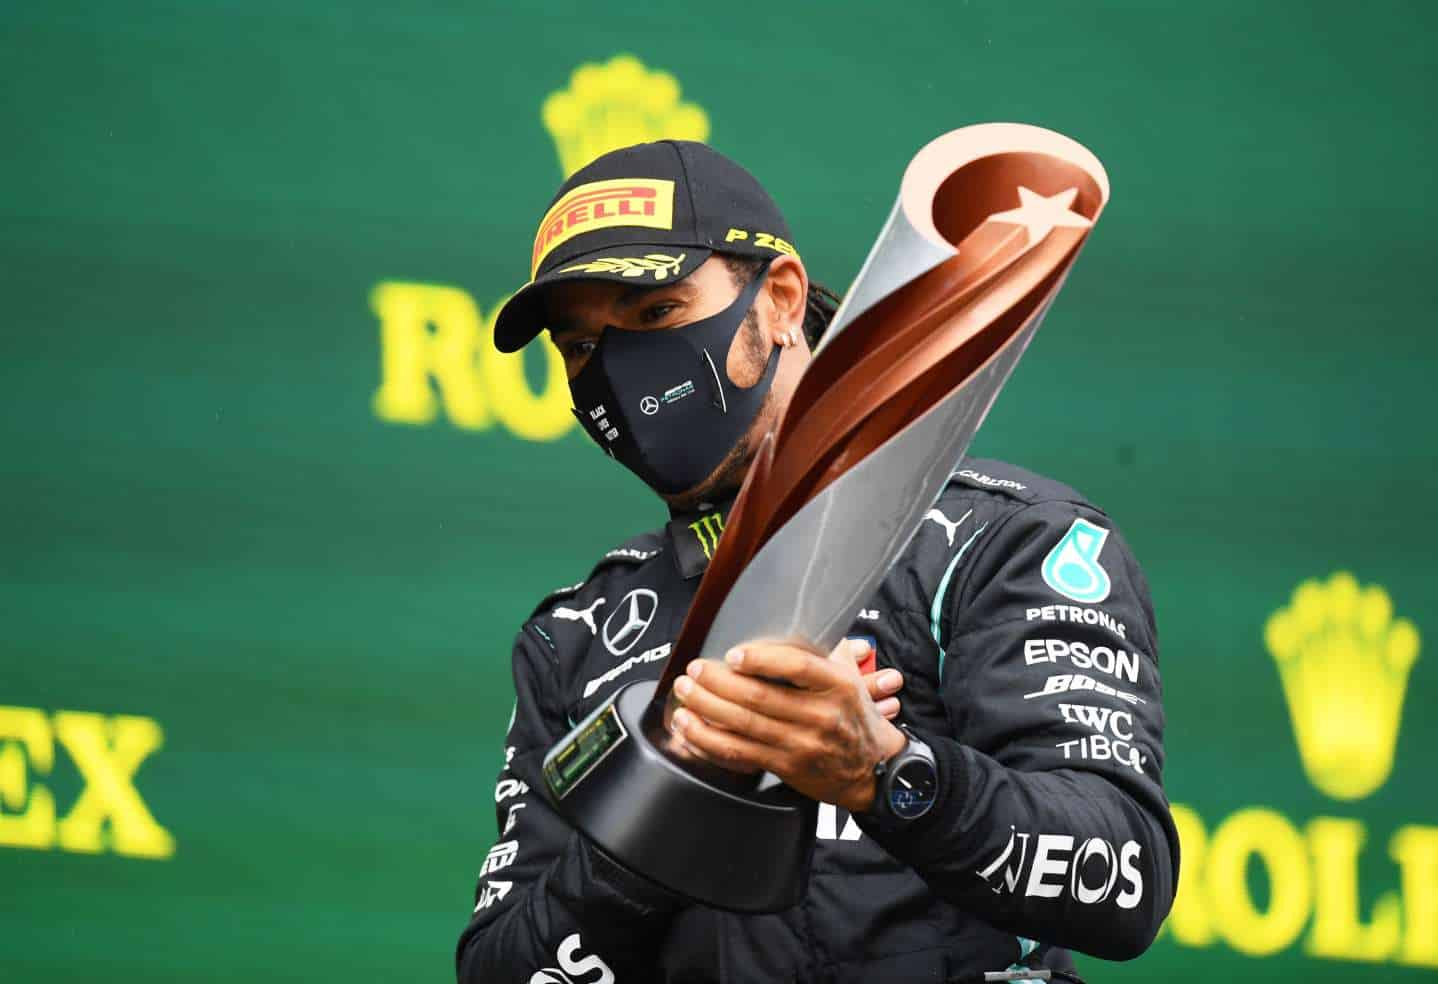 Success means nothing without change, says Hamilton 4